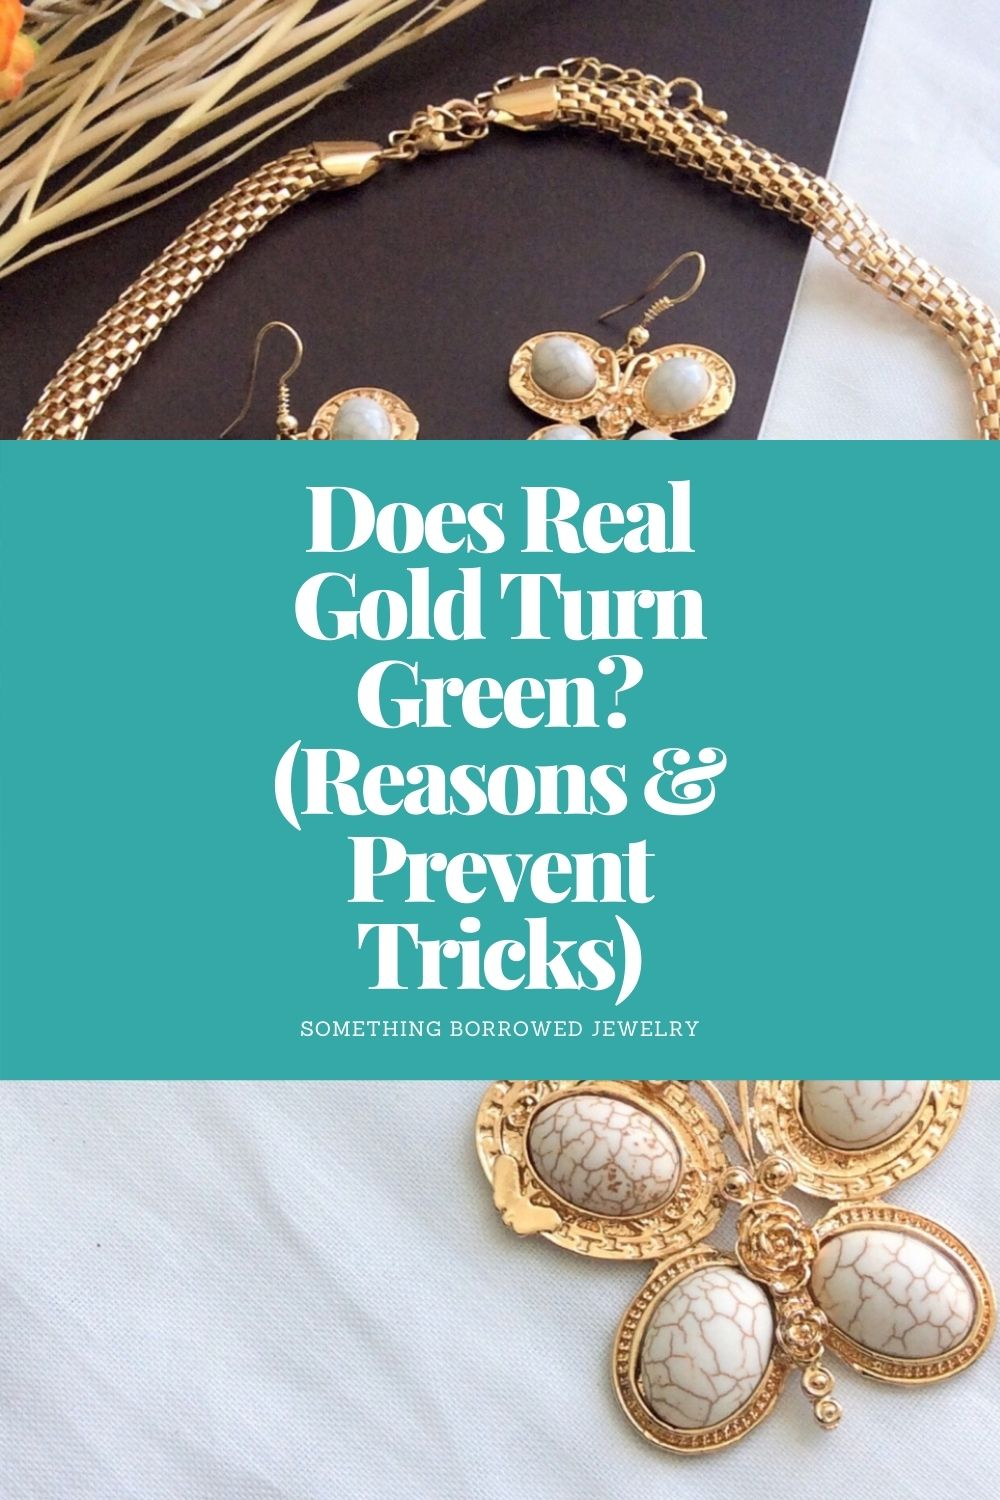 Does Real Gold Turn Green (Reasons & Prevent Tricks) pin